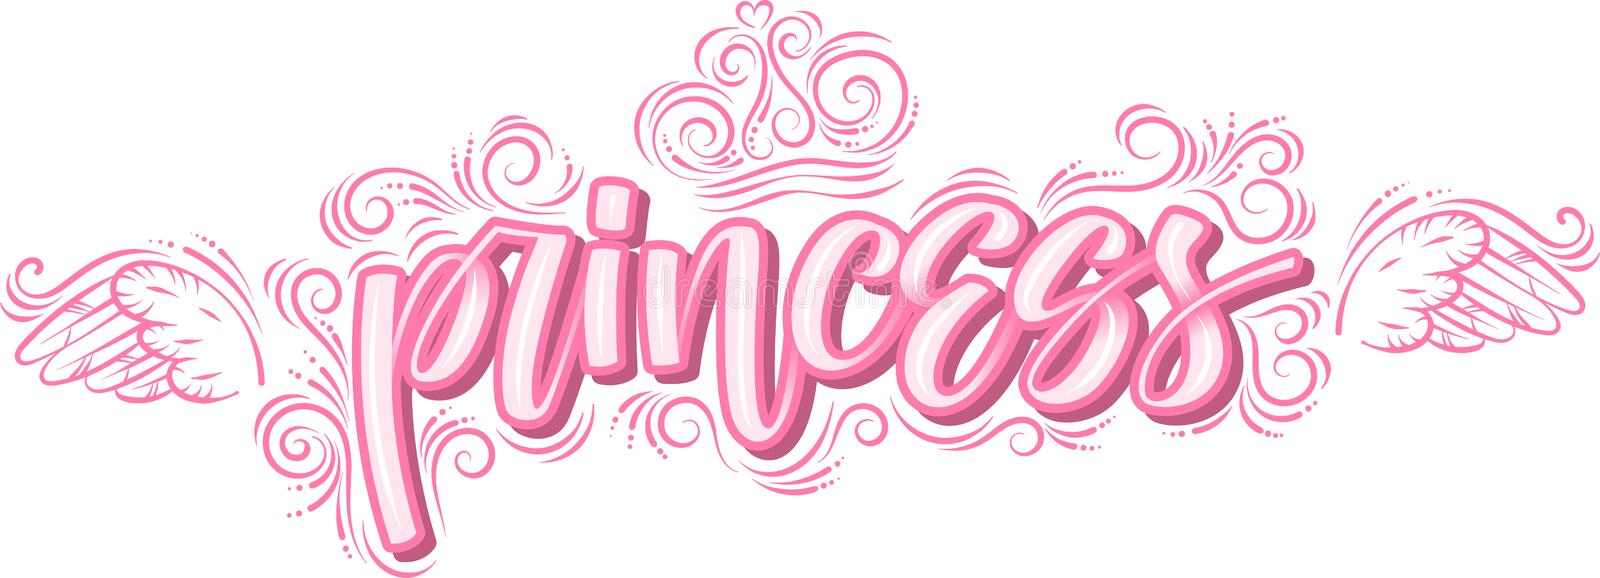 Princess. Hand drawn creative modern calligraphy in pink stock illustration